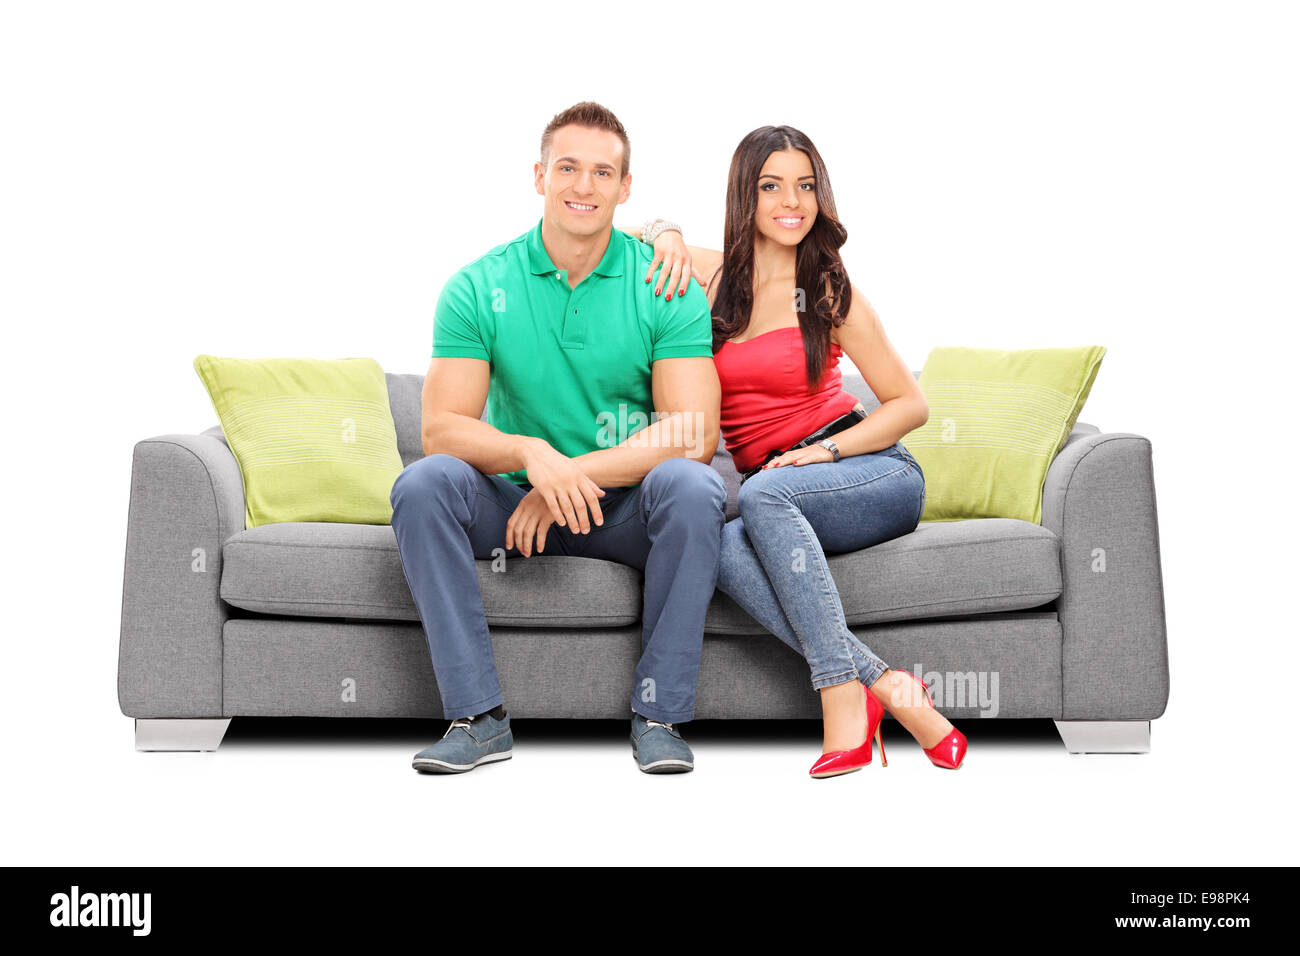 Young Couple Posing Seated On A Modern Sofa Isolated On White Stock Photo Alamy